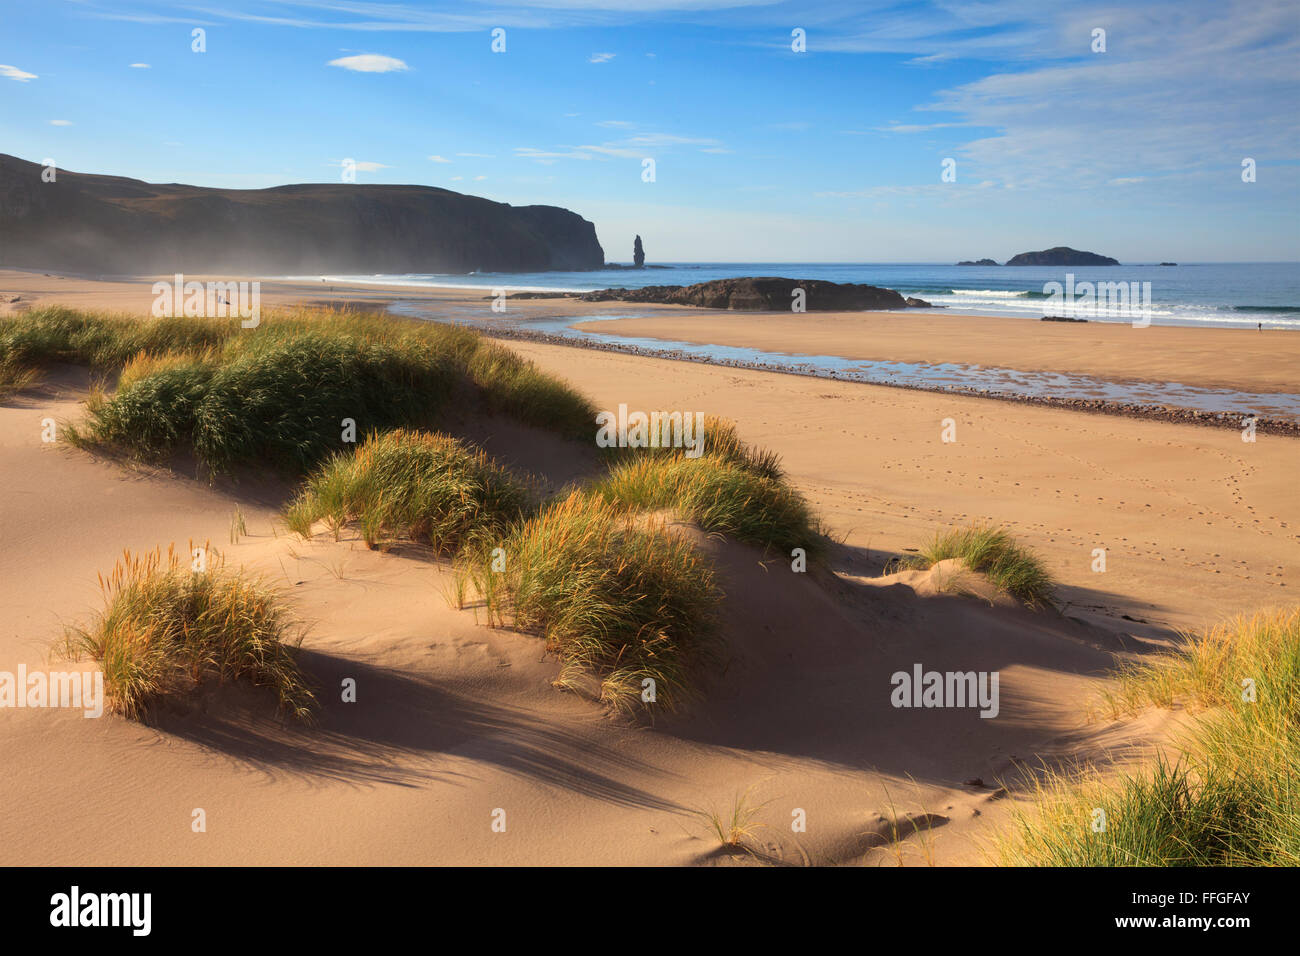 Sand dunes at the remote but popular Sandwood Bay, to the north of Kinlochbervie in the far North West Highlands - Stock Image